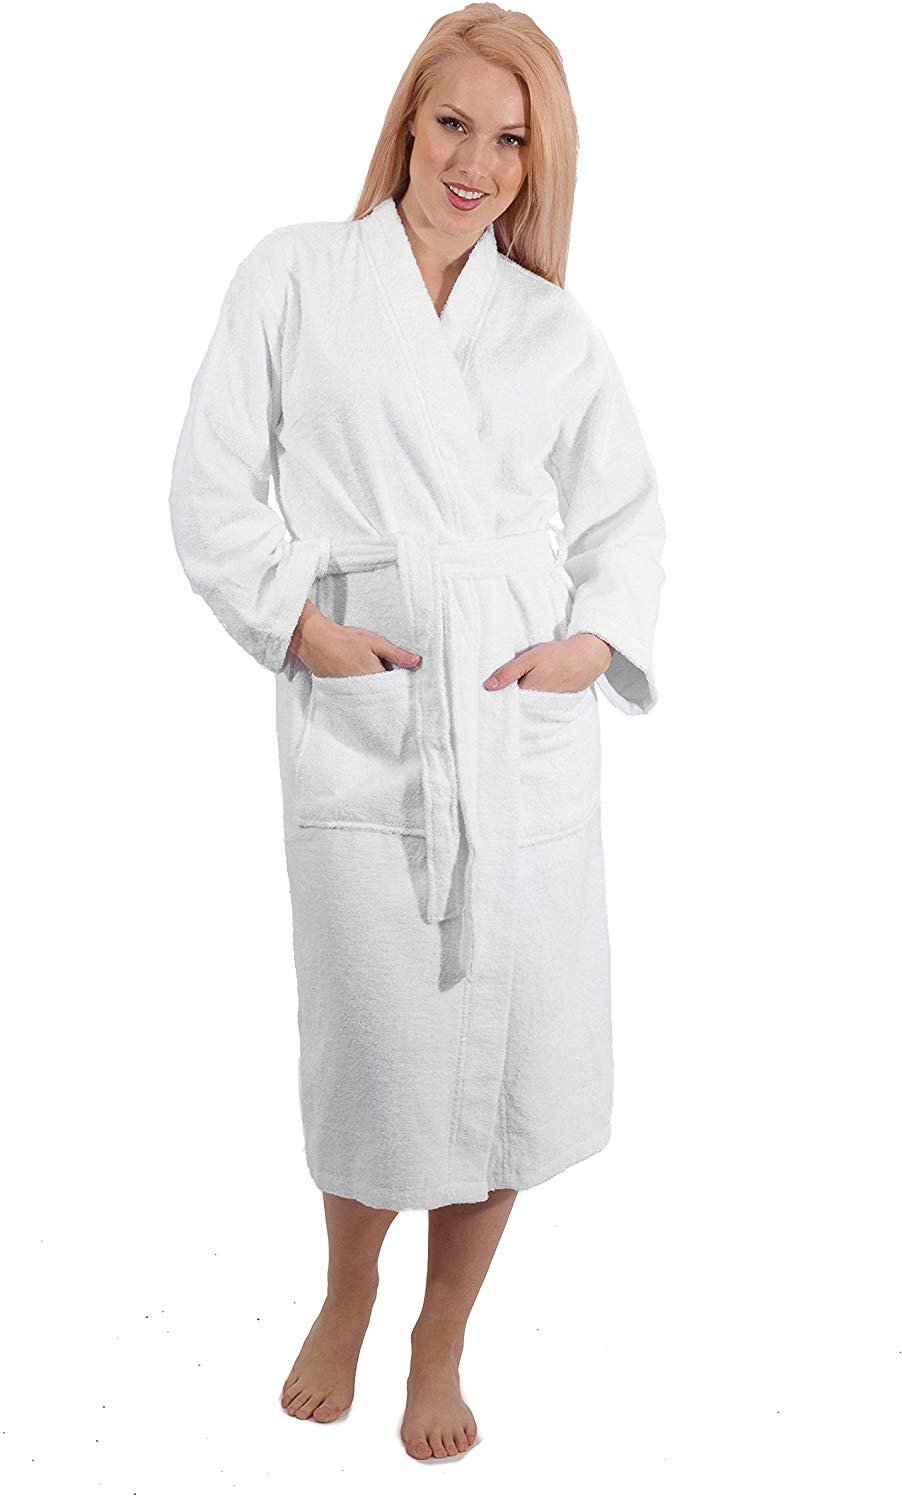 SALBAKOS Kimono Robes - 100% Turkish Cotton - with and Without Hood Options